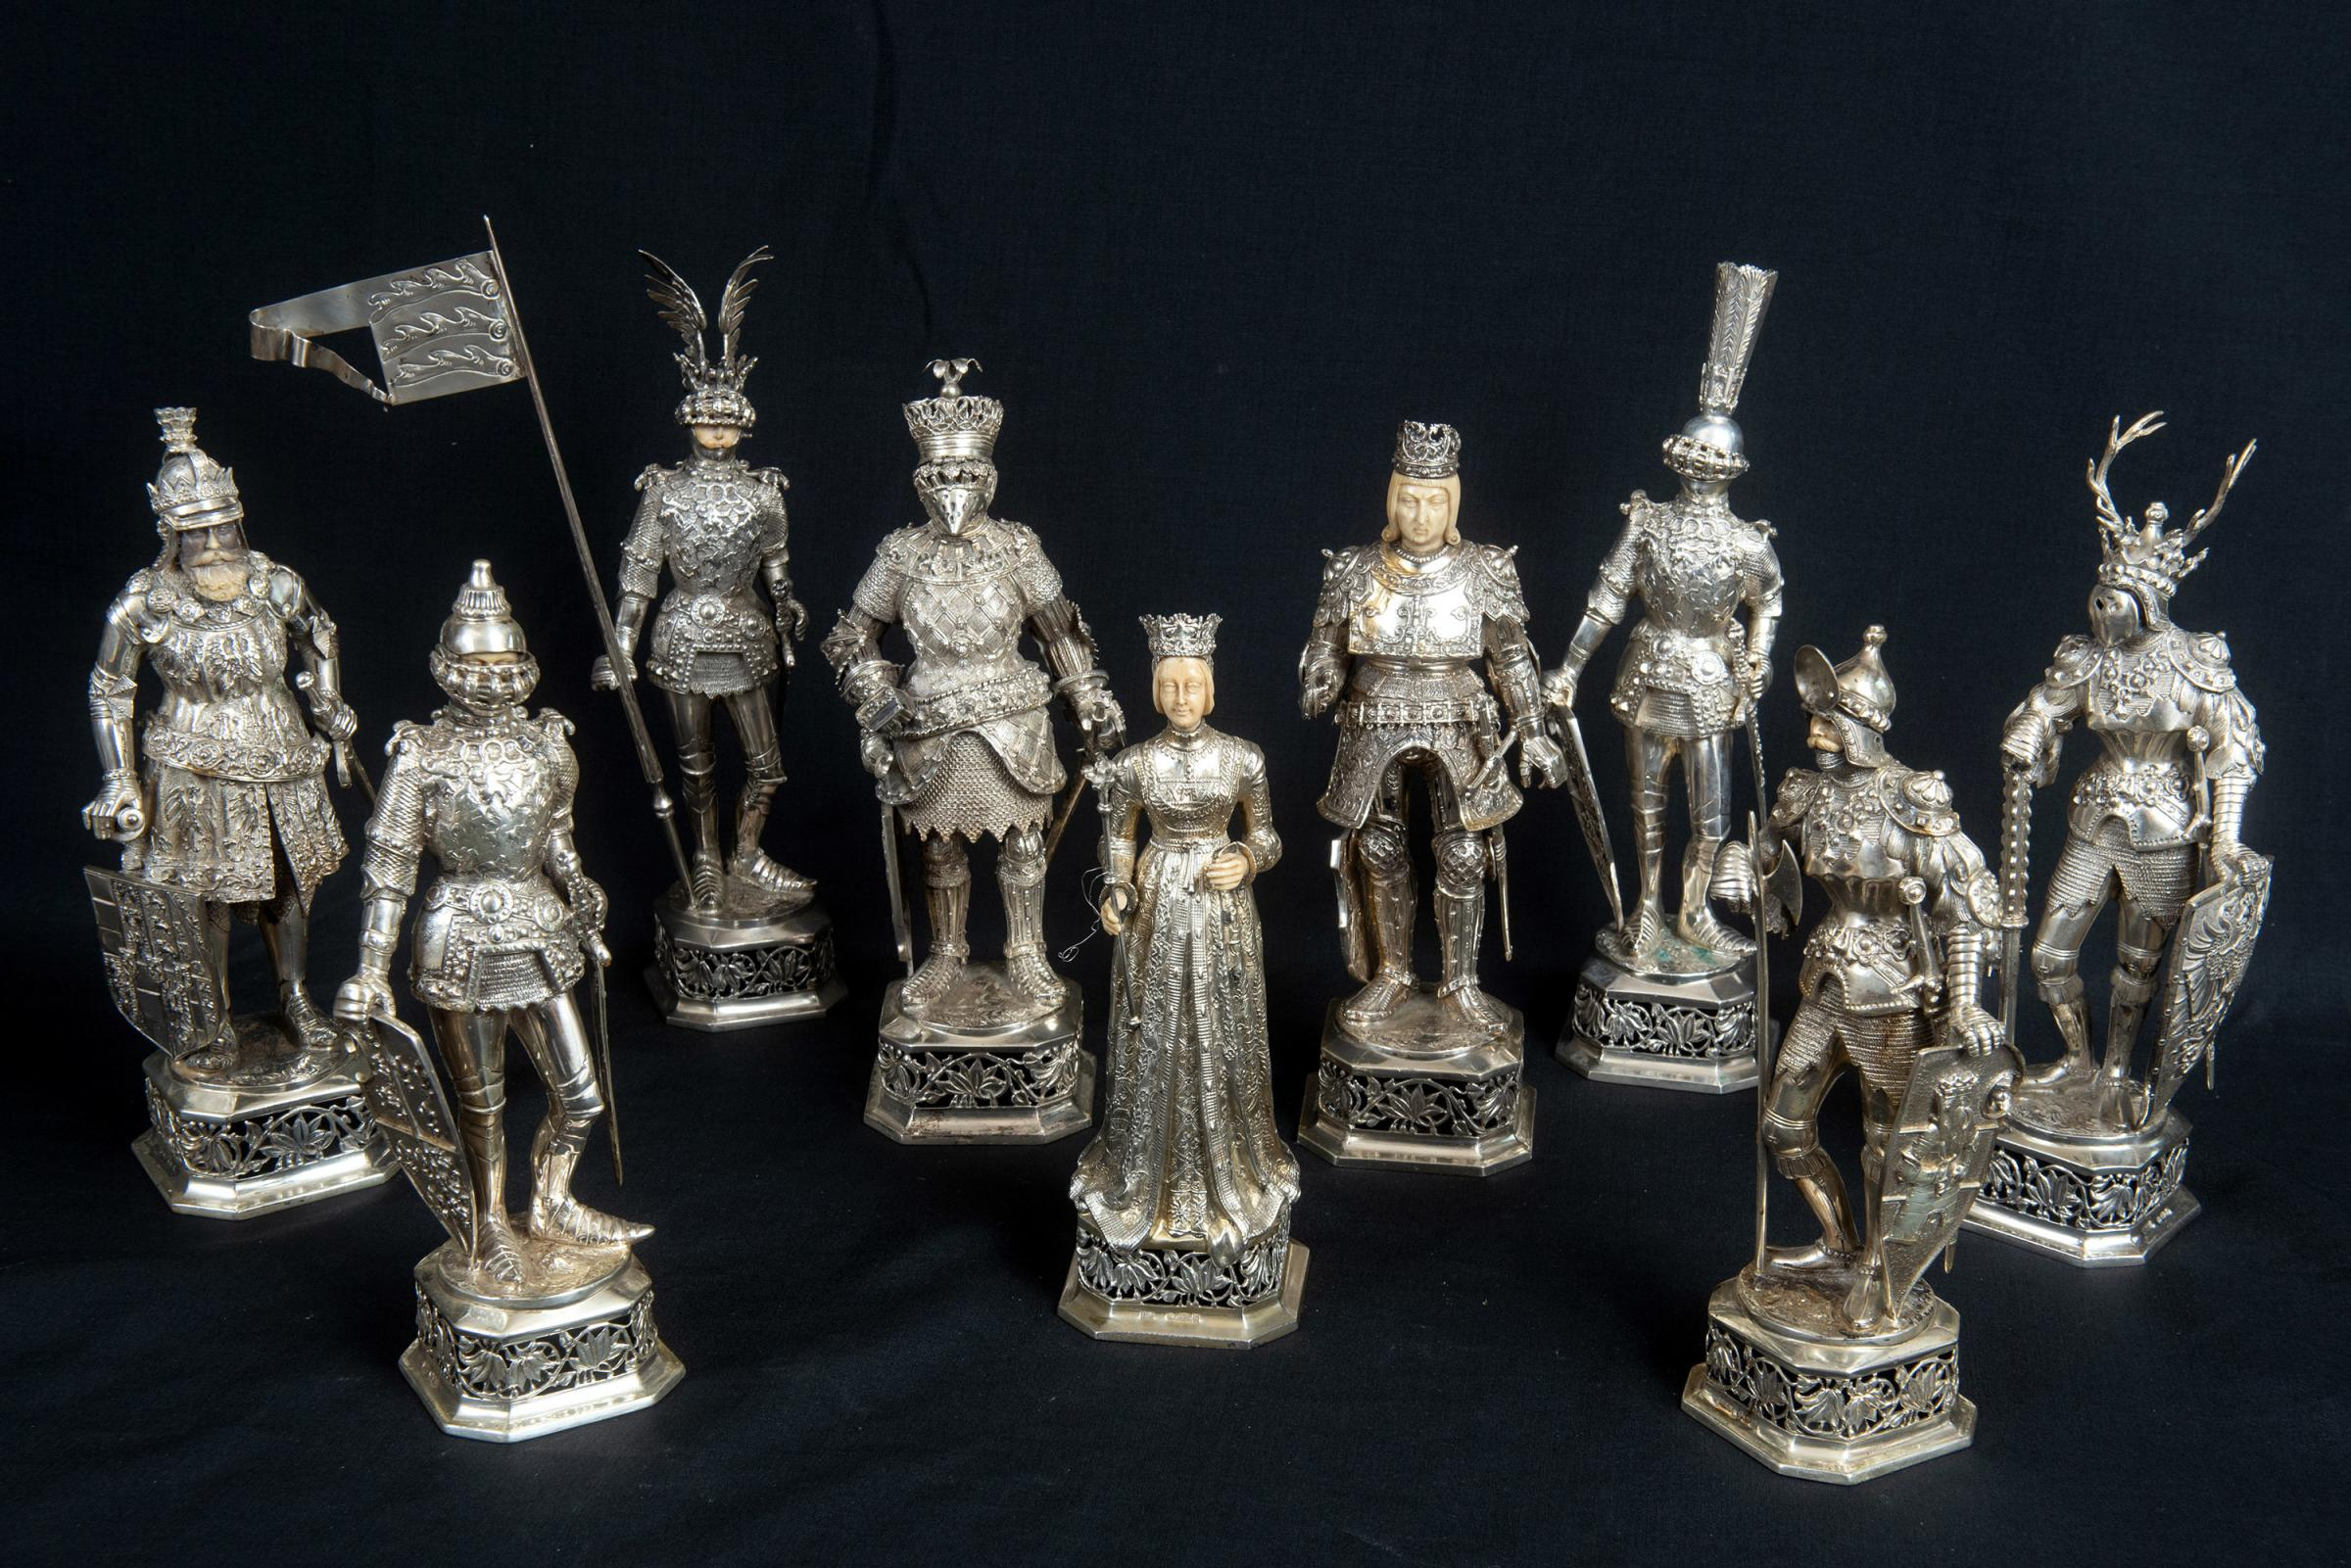 KNIGHTS SOLD: This superb single vendor collection of silver Teutonic knights collectively sold for £8,450